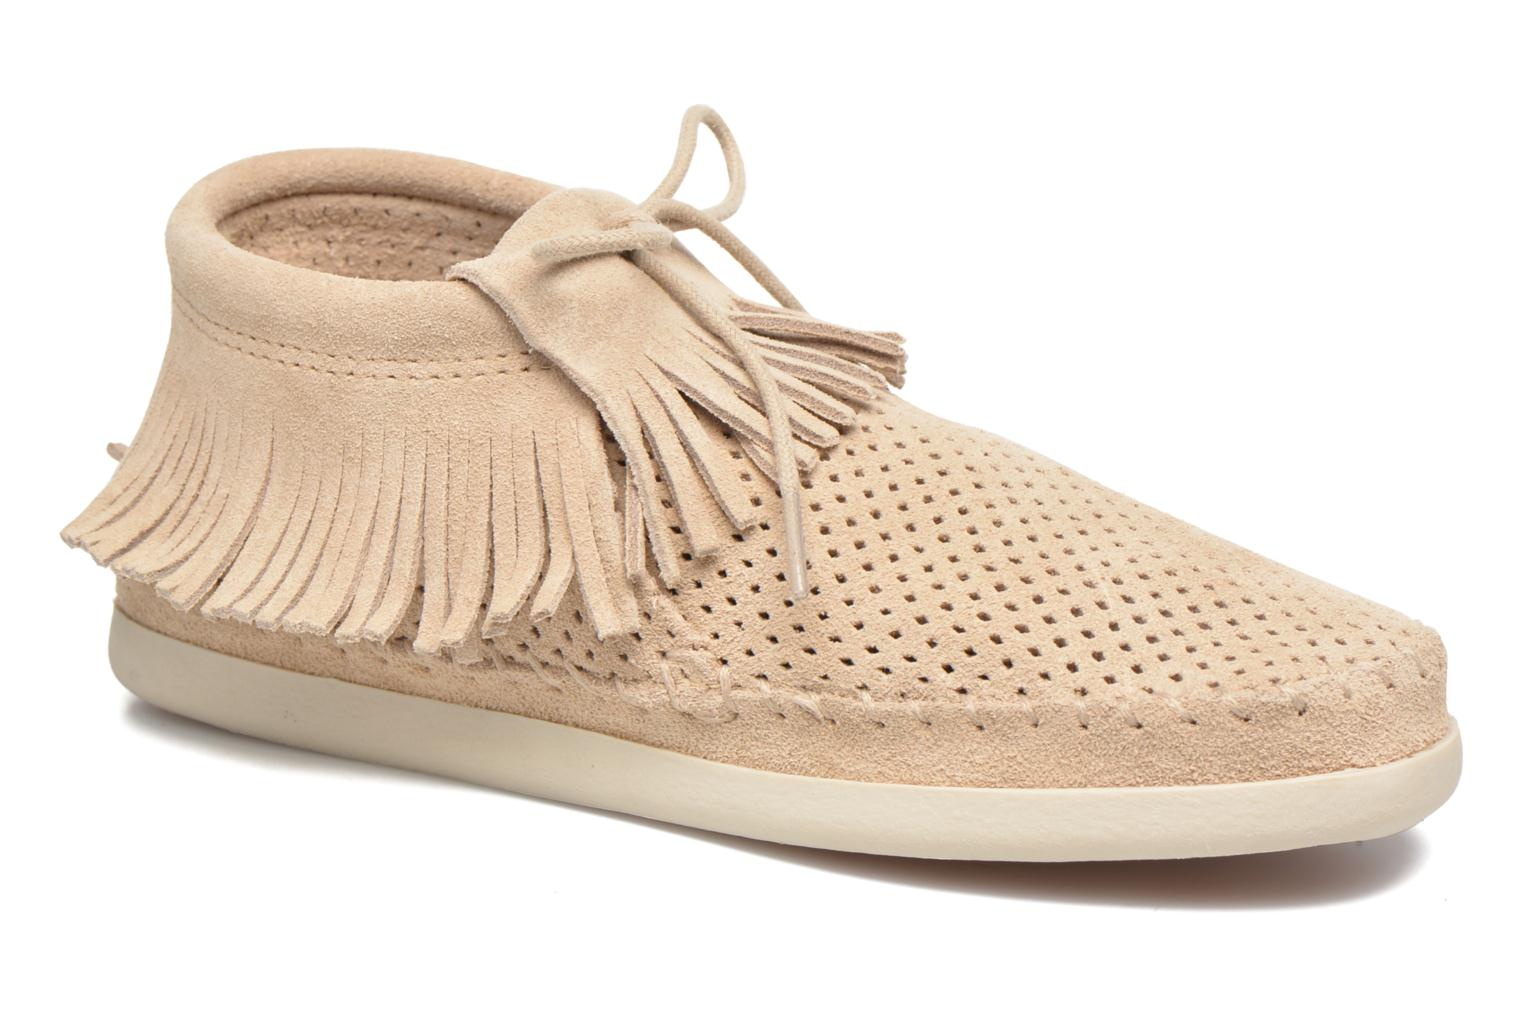 Venice Perf stone suede